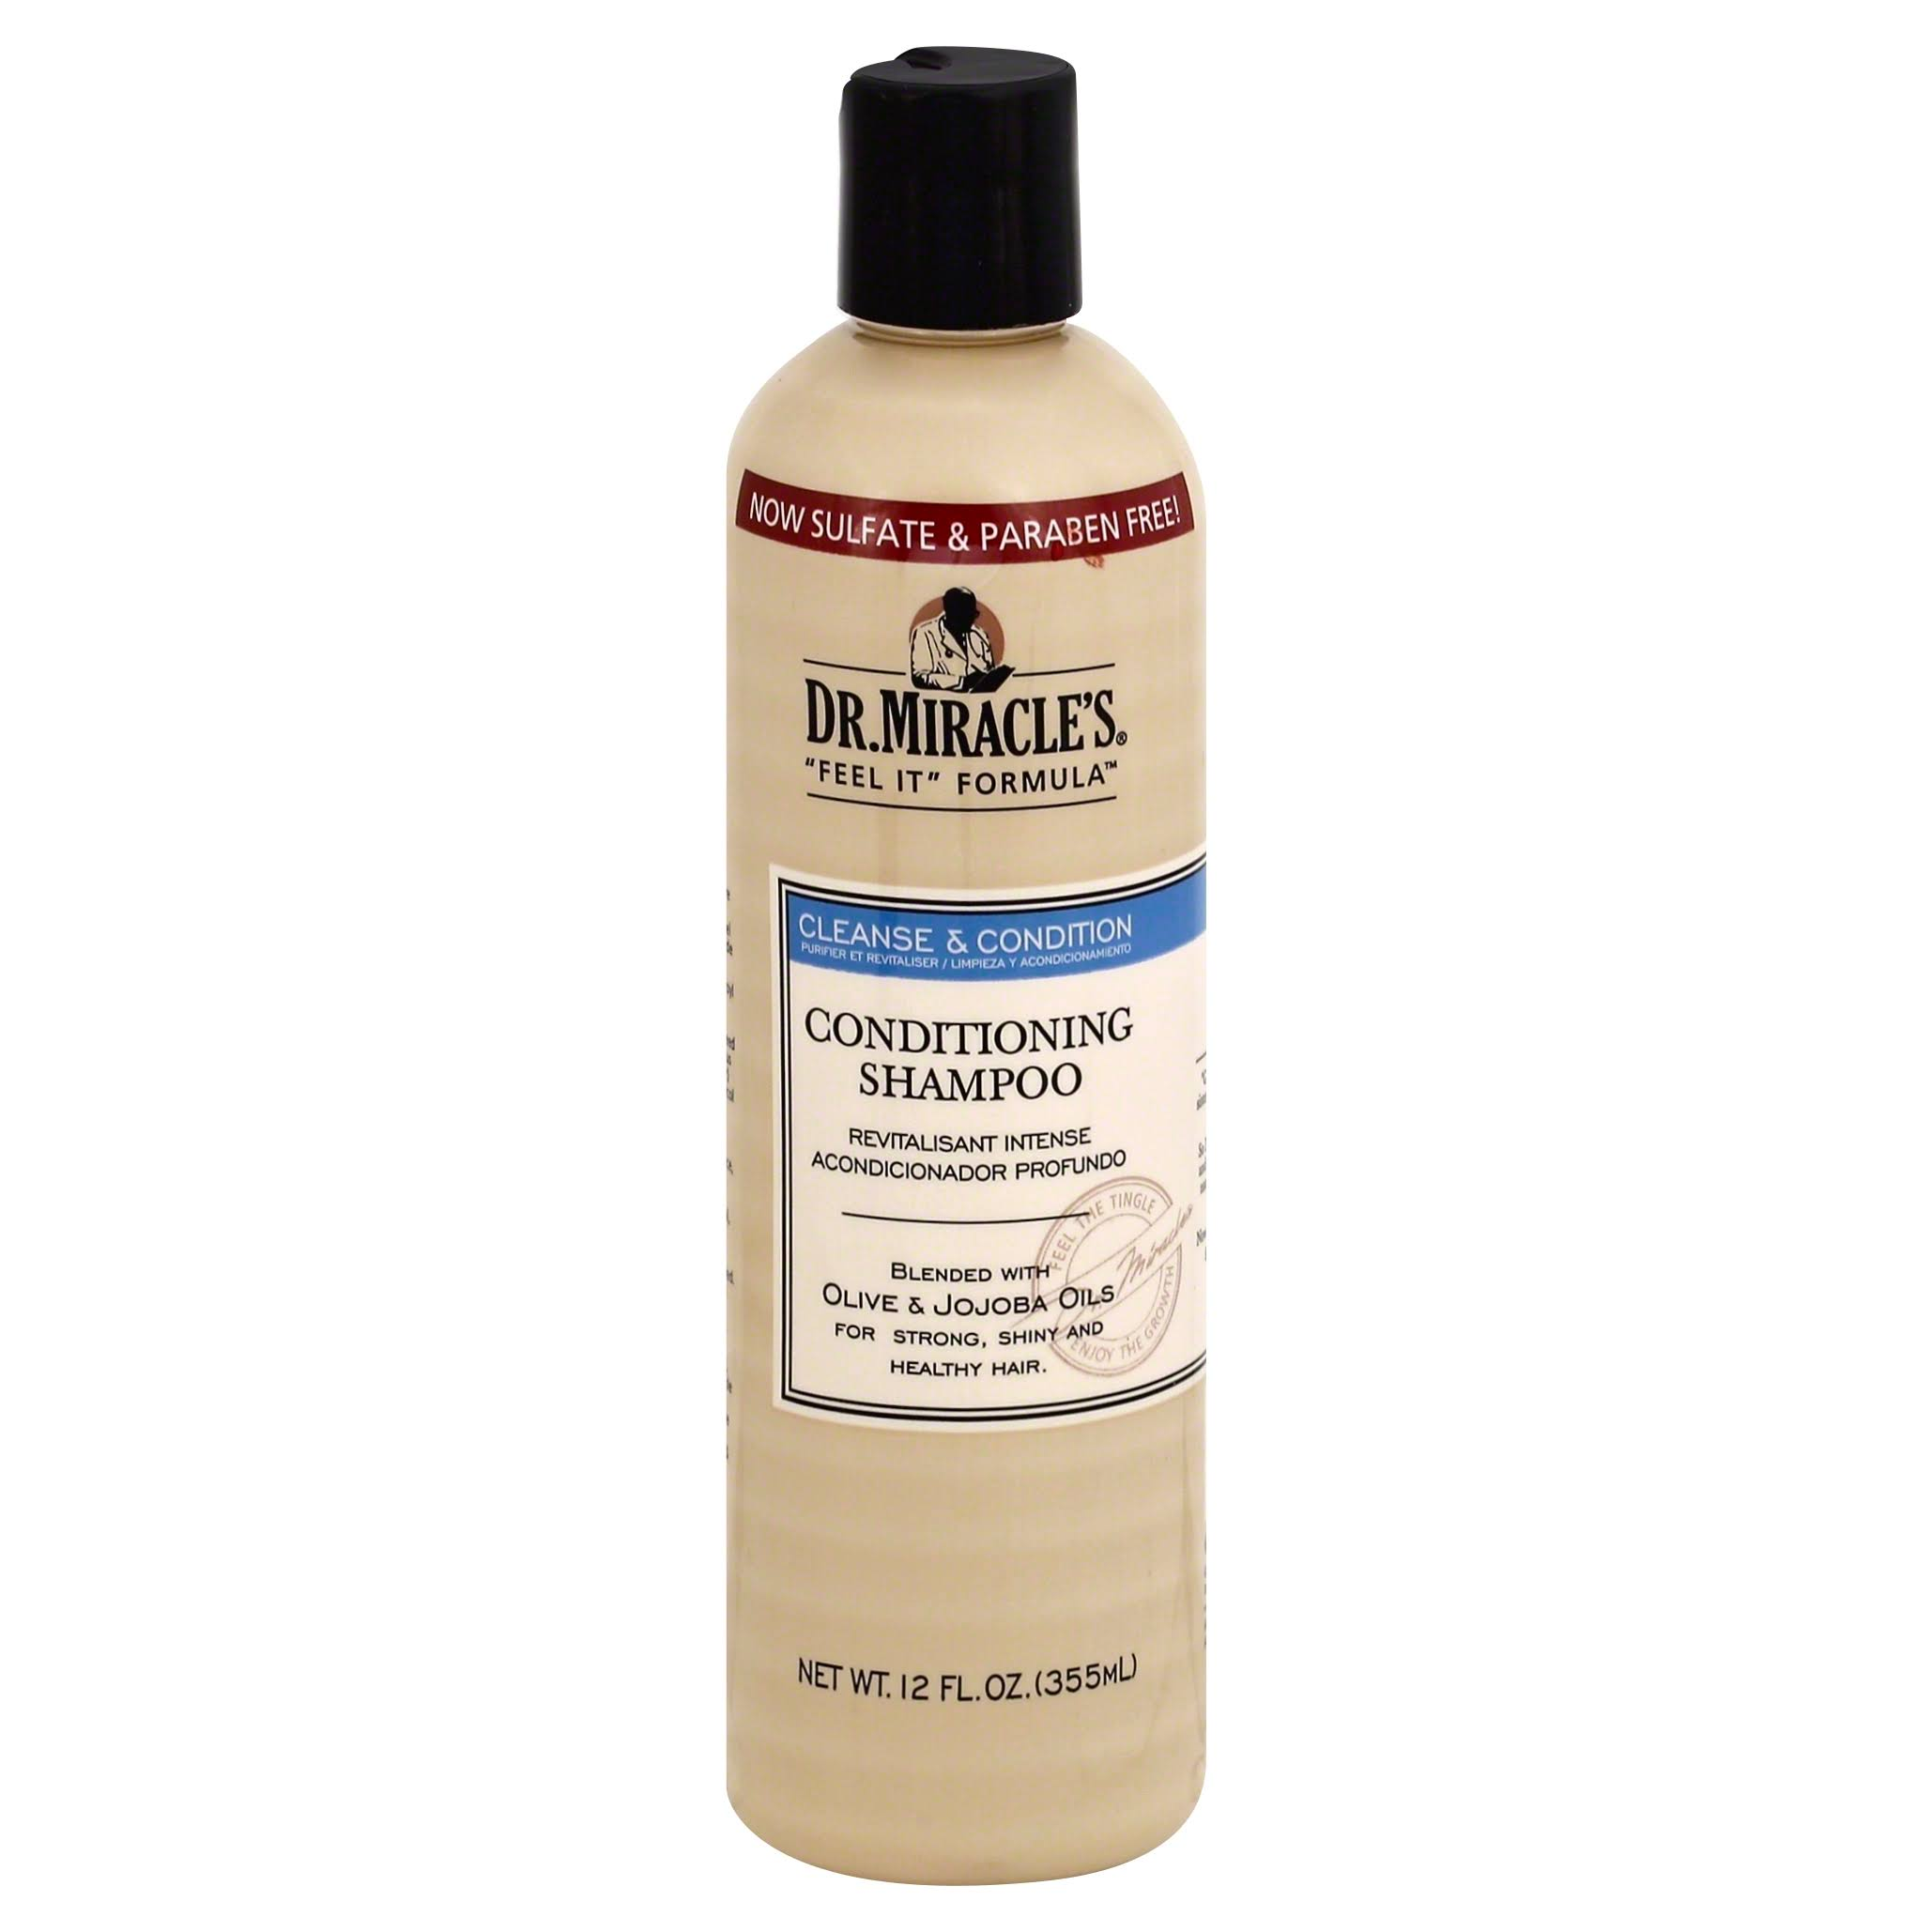 Dr. Miracle's Feel It Formula Conditioning Shampoo